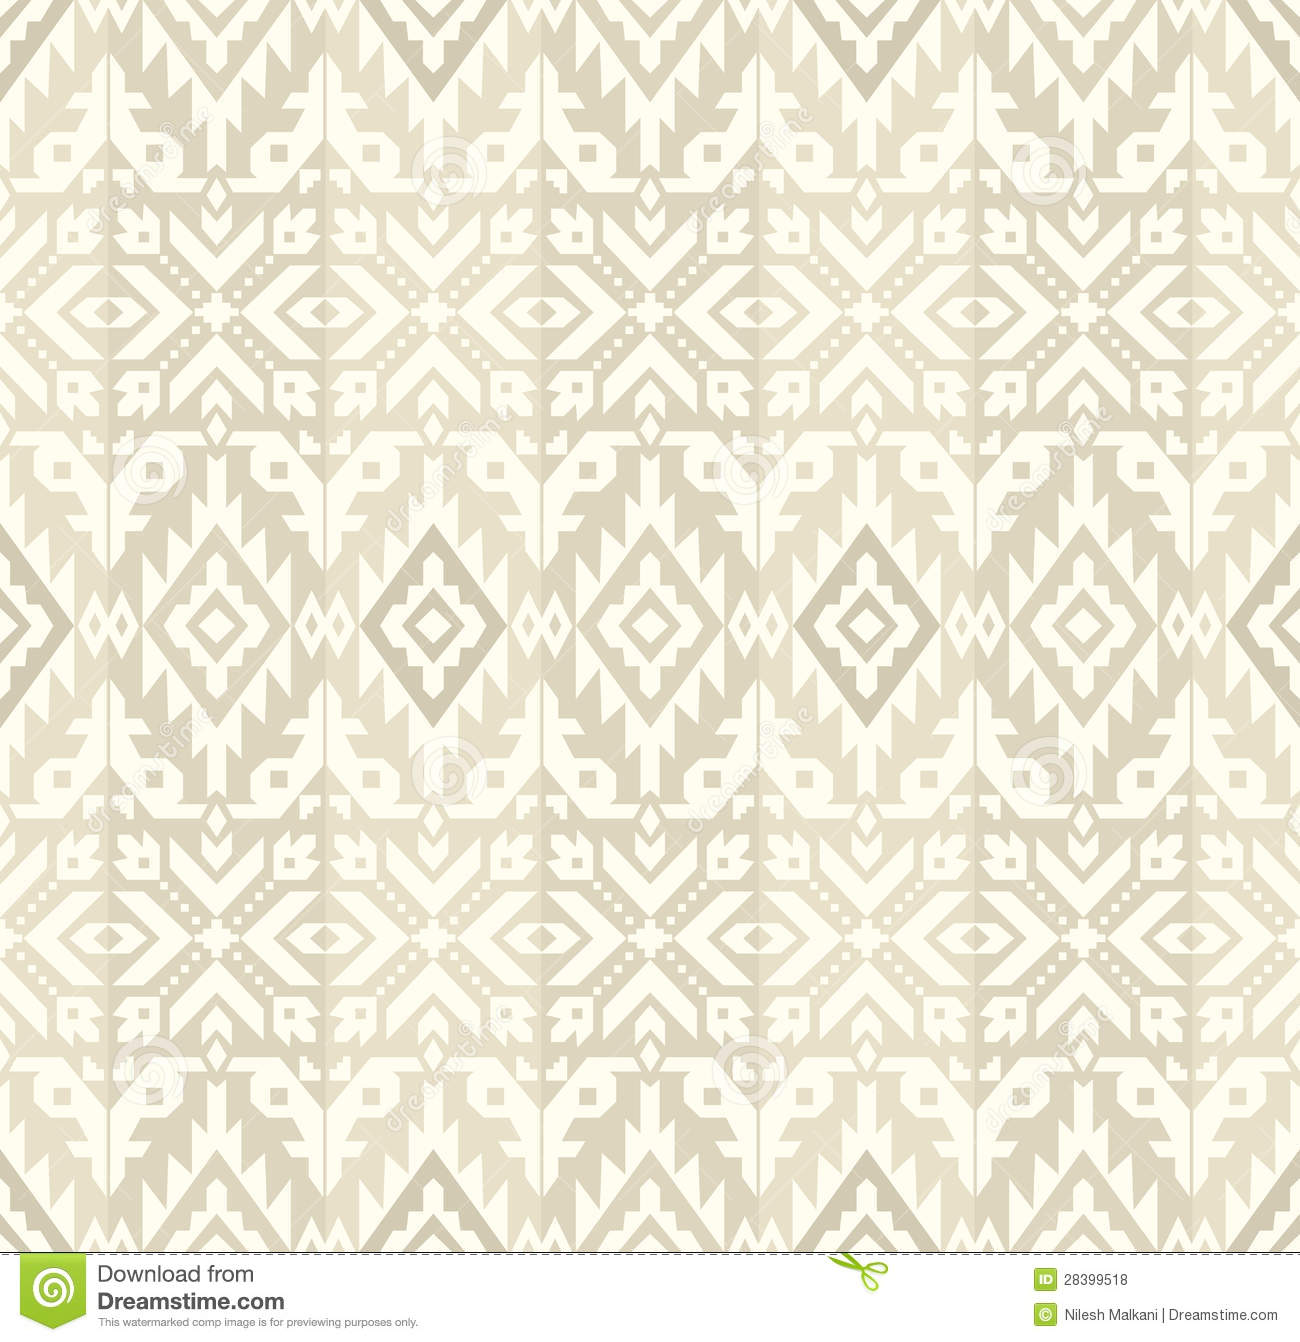 Bed sheets designs texture - Seamless Background For Bed Sheet